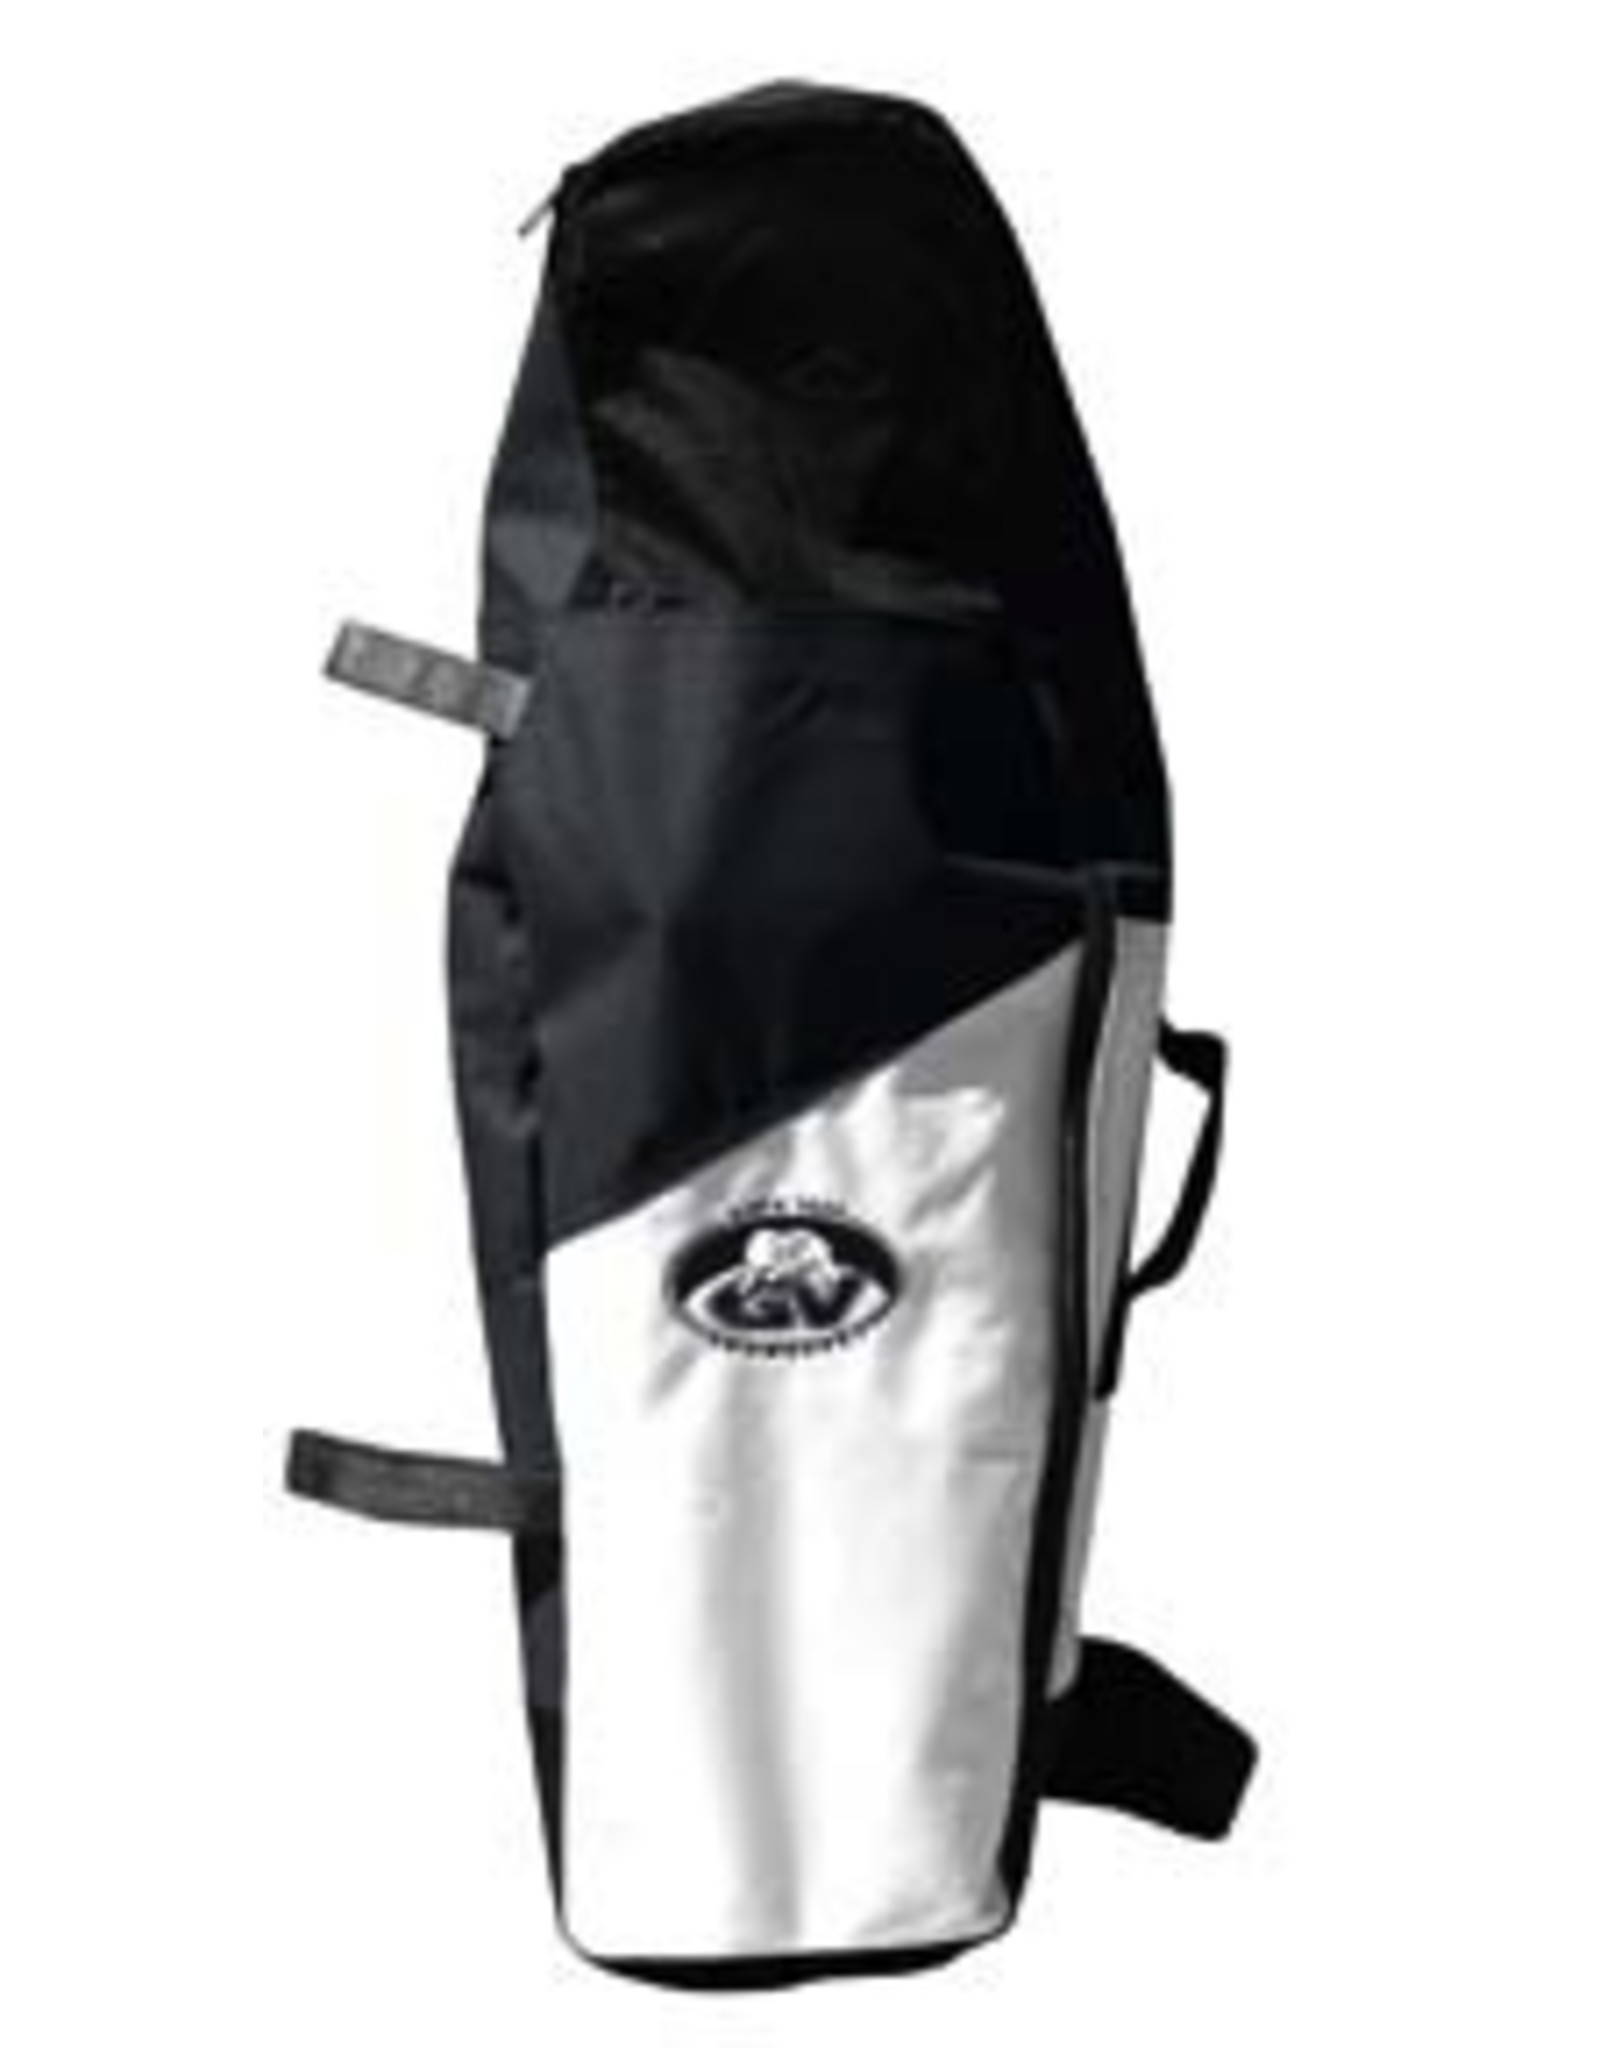 GV Snowshoes GV Snowshoe Accessories Bag, Medium, 8x28 to 11x28